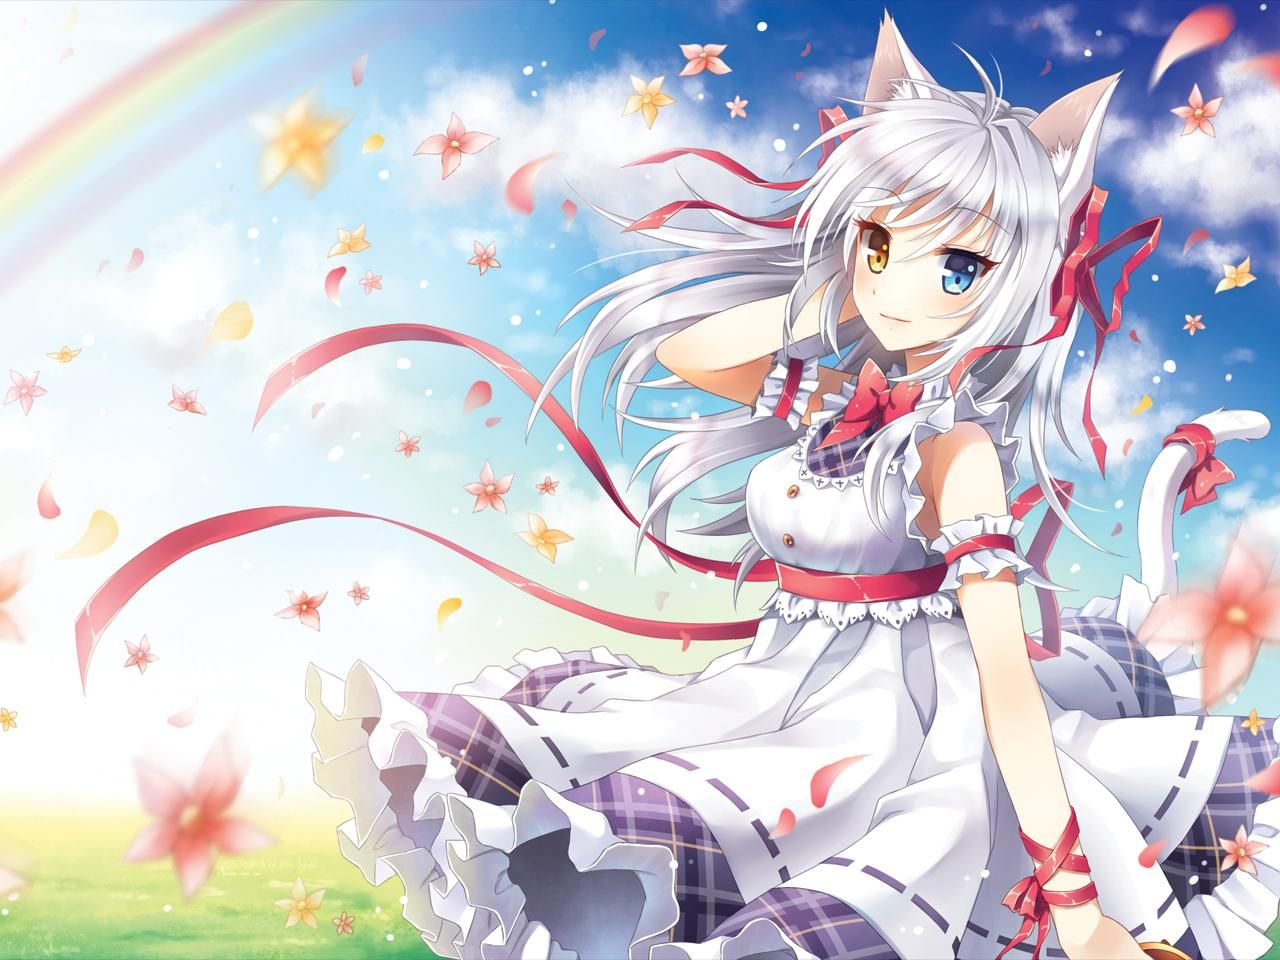 Cat Girl Wallpapers New Hd Wallpapers Anime Anime Cat Anime